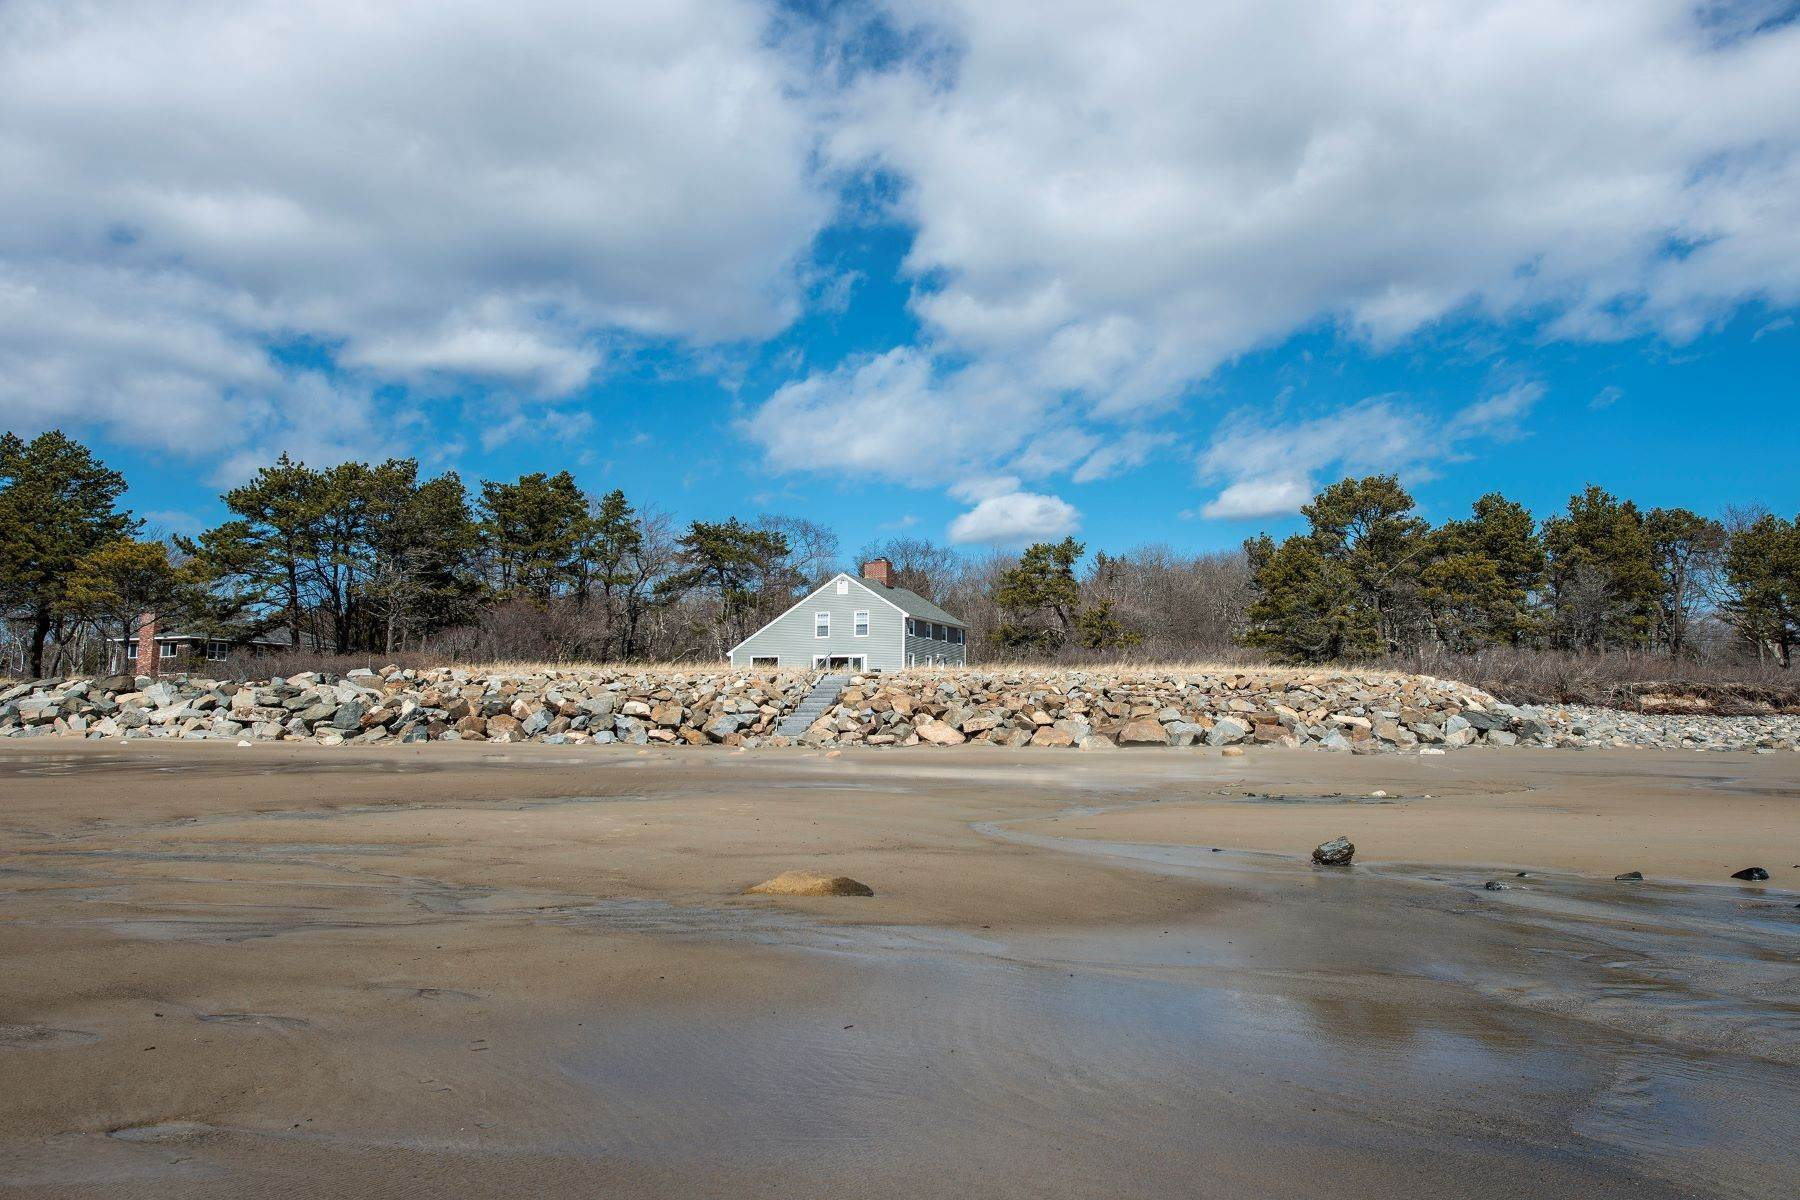 30. Other Residential Homes at Sandpiper 22 Crescent Surf Road, Kennebunk, ME 04043